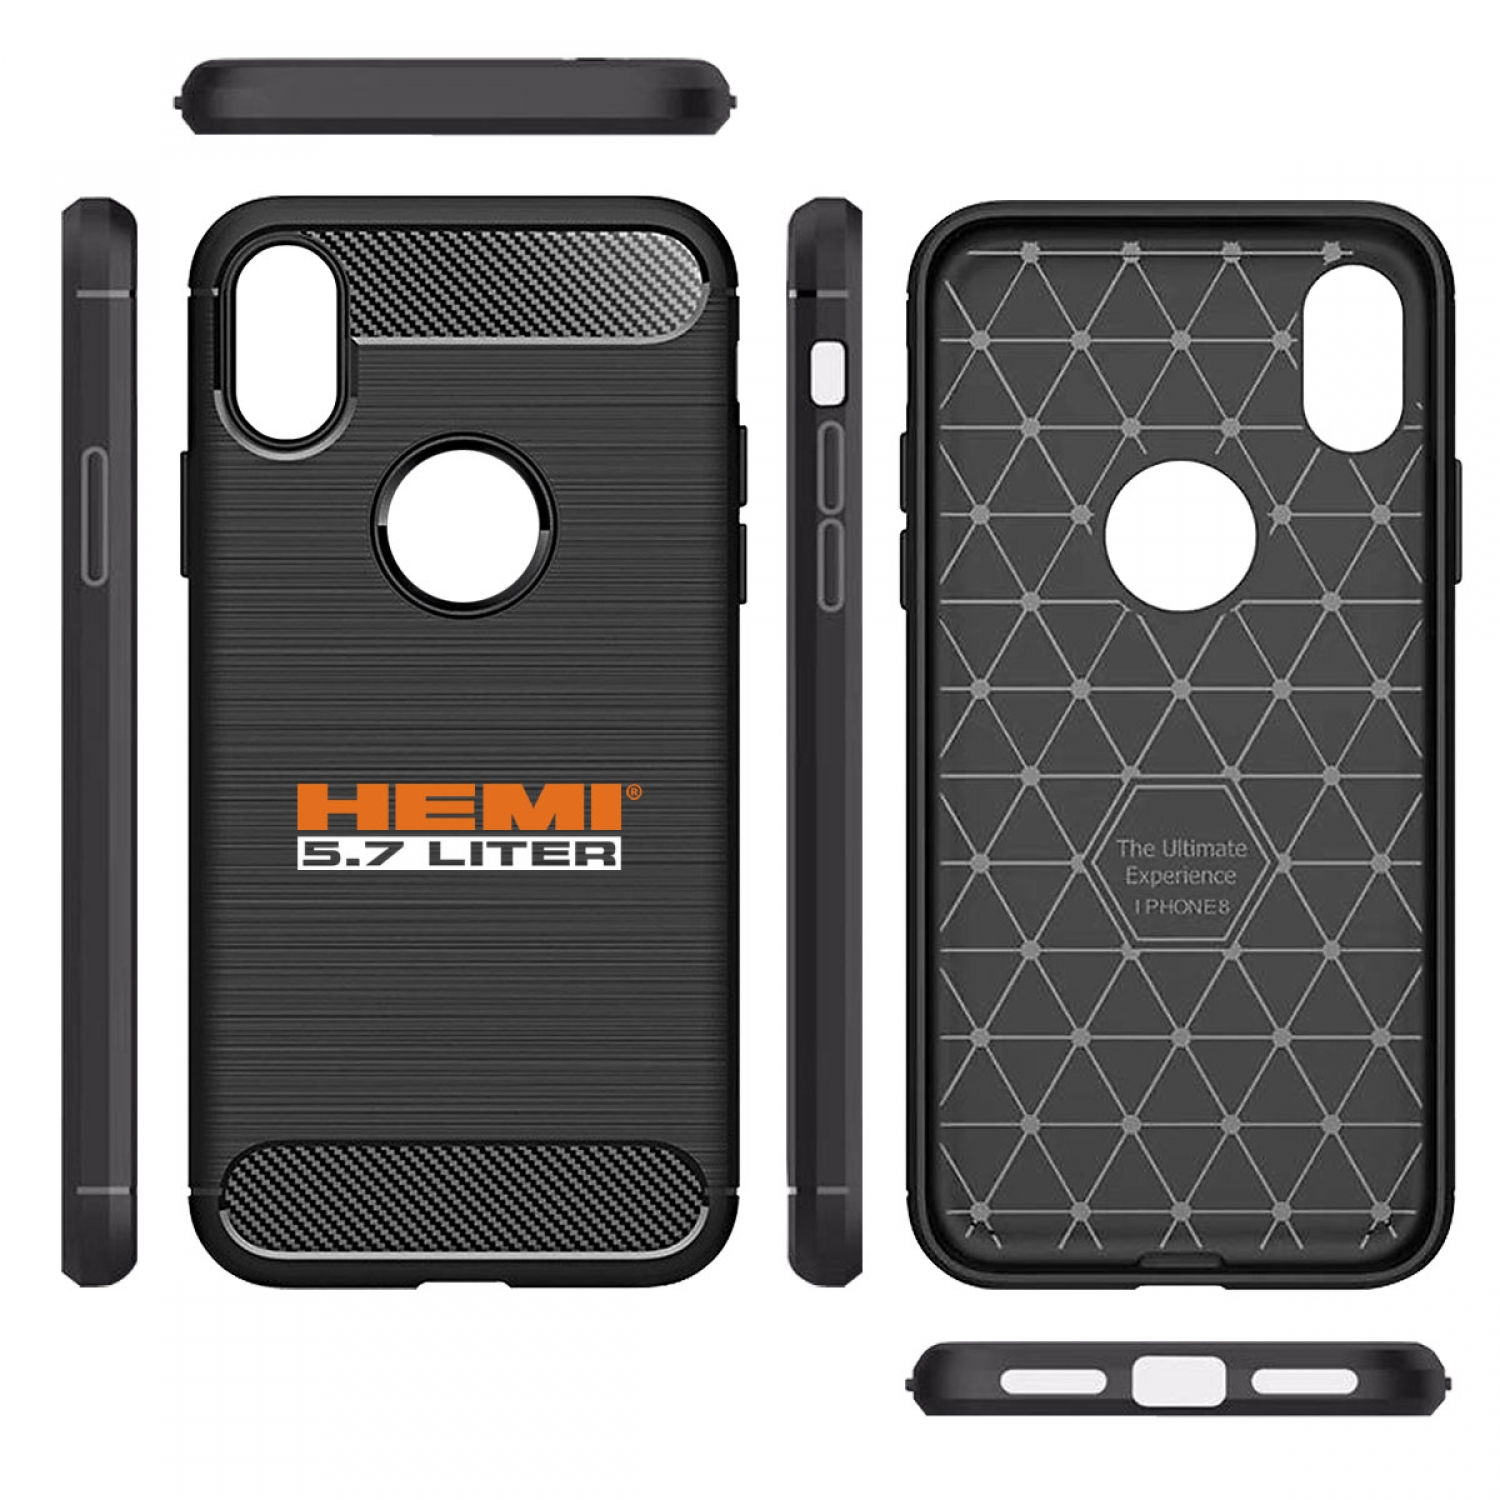 HEMI 5.7 Liter iPhone X TPU Shockproof Black Carbon Fiber Textures Stripes Cell Phone Case